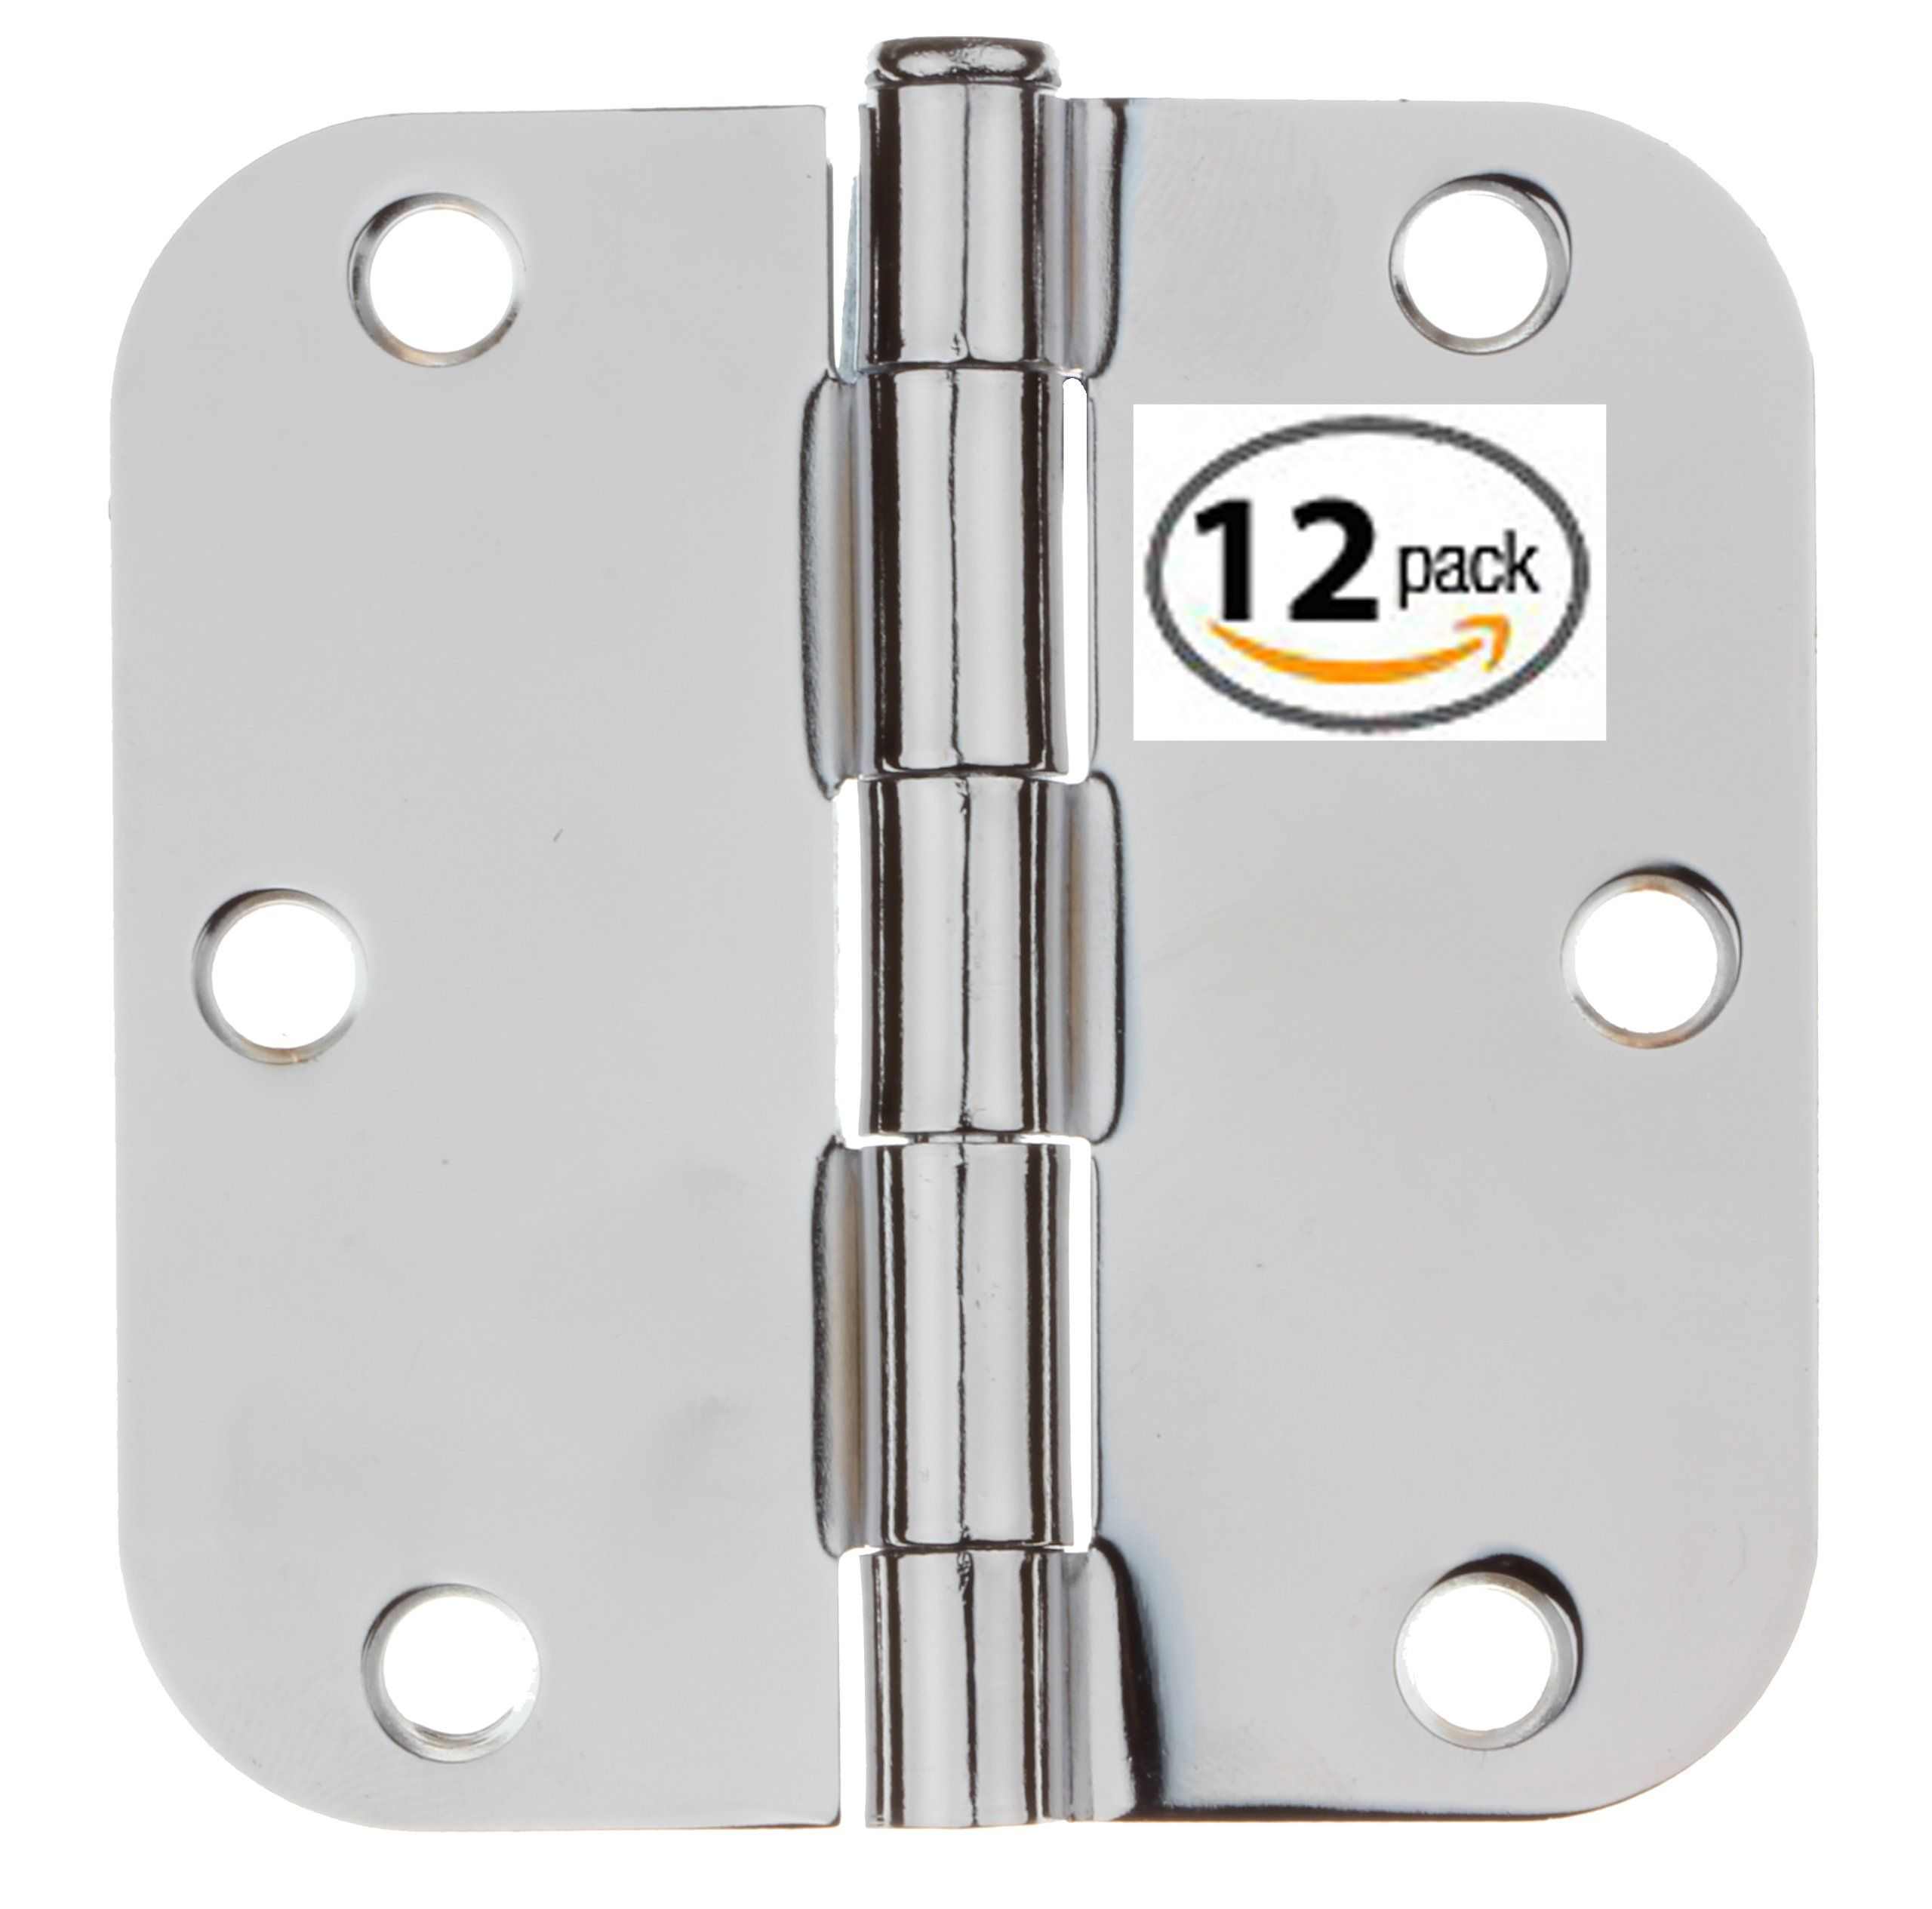 3558 Pc 12 Gliderite 3 1 2 Quot Polished Chrome Door Hinges 5 8 Quot Radius Corners Free Shipping Pack Of 12 Polished Chrome Door Hinges Chrome